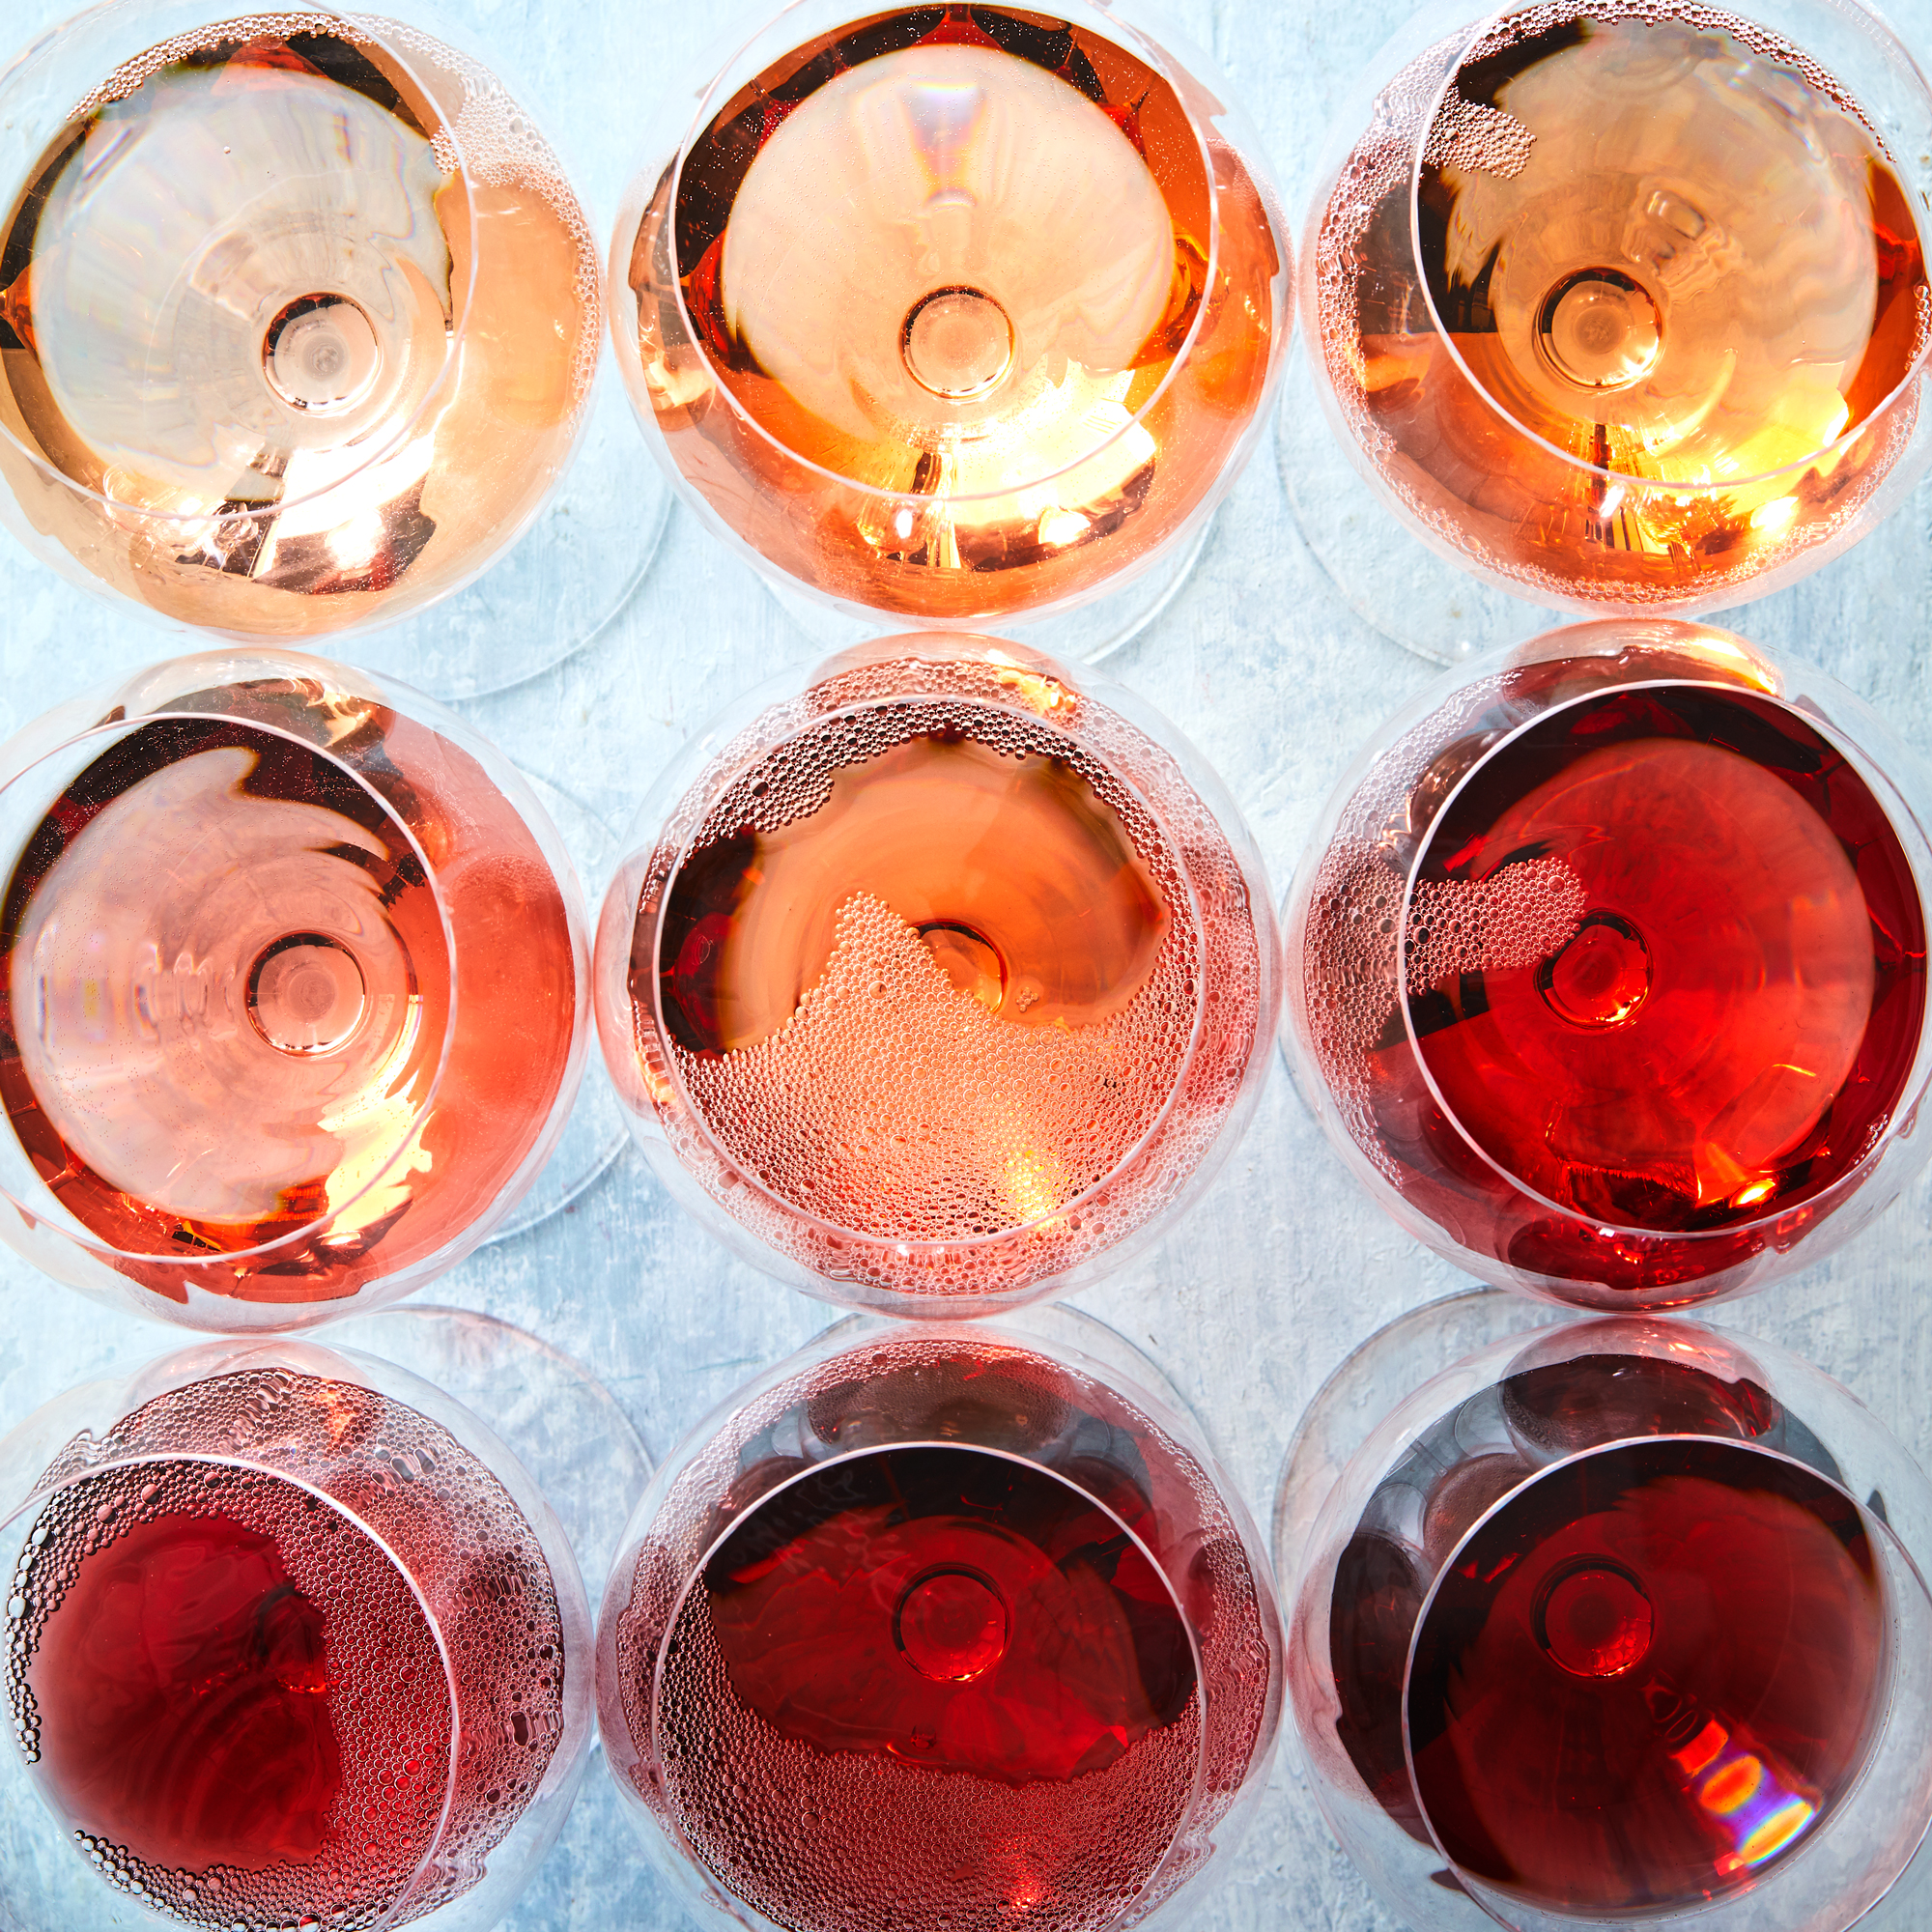 Winter Rosé Wines